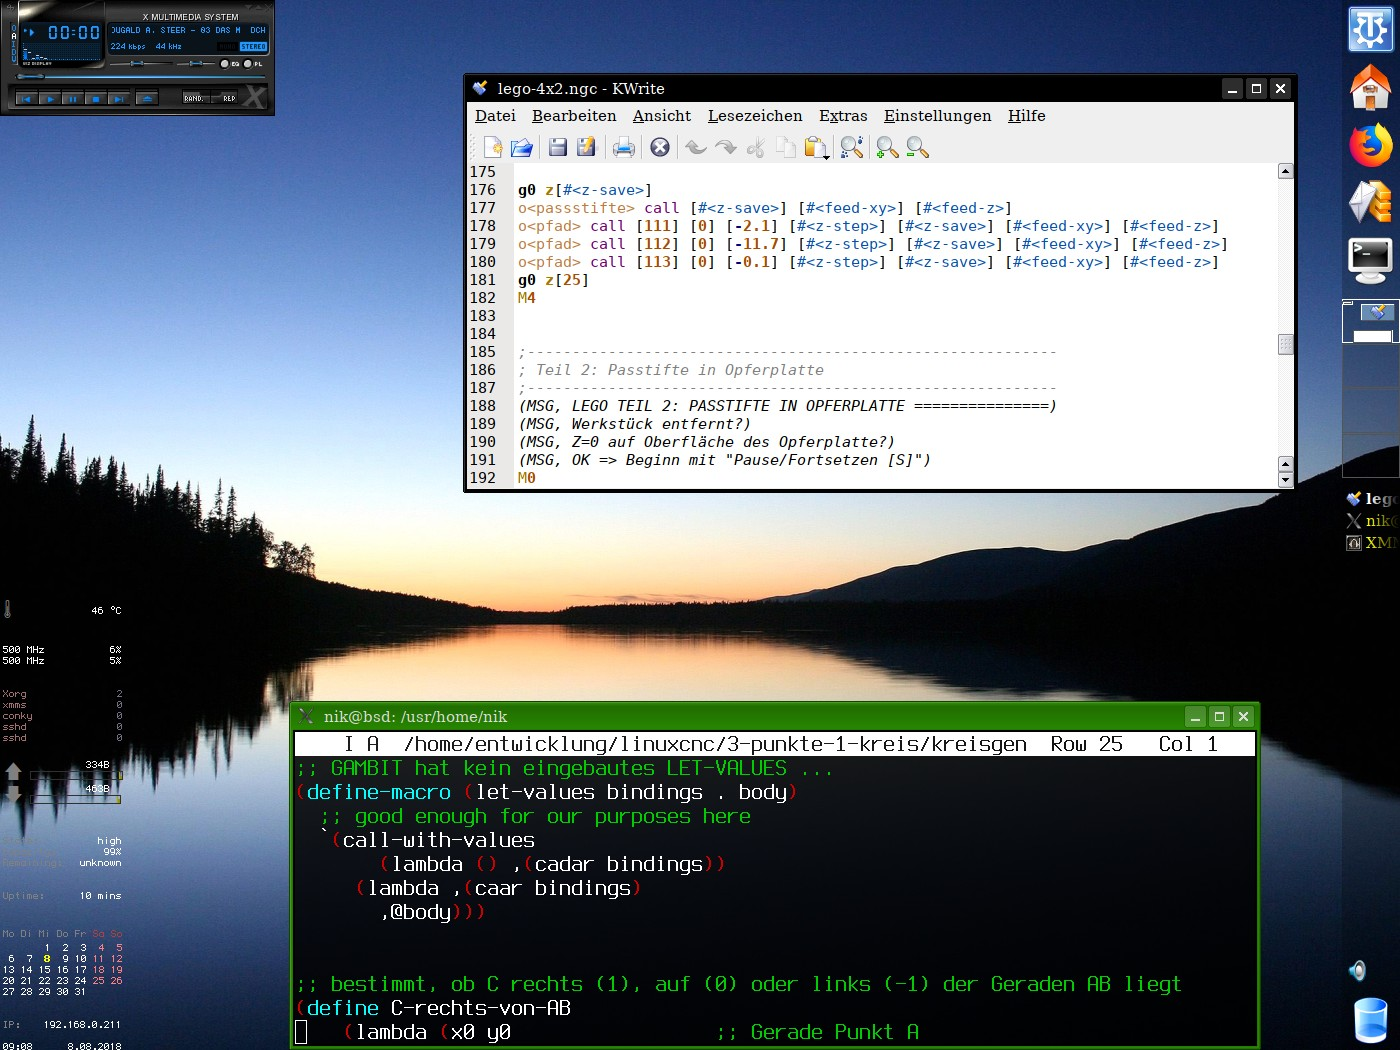 Trinity R14.0.5 Desktop on FreeBSD